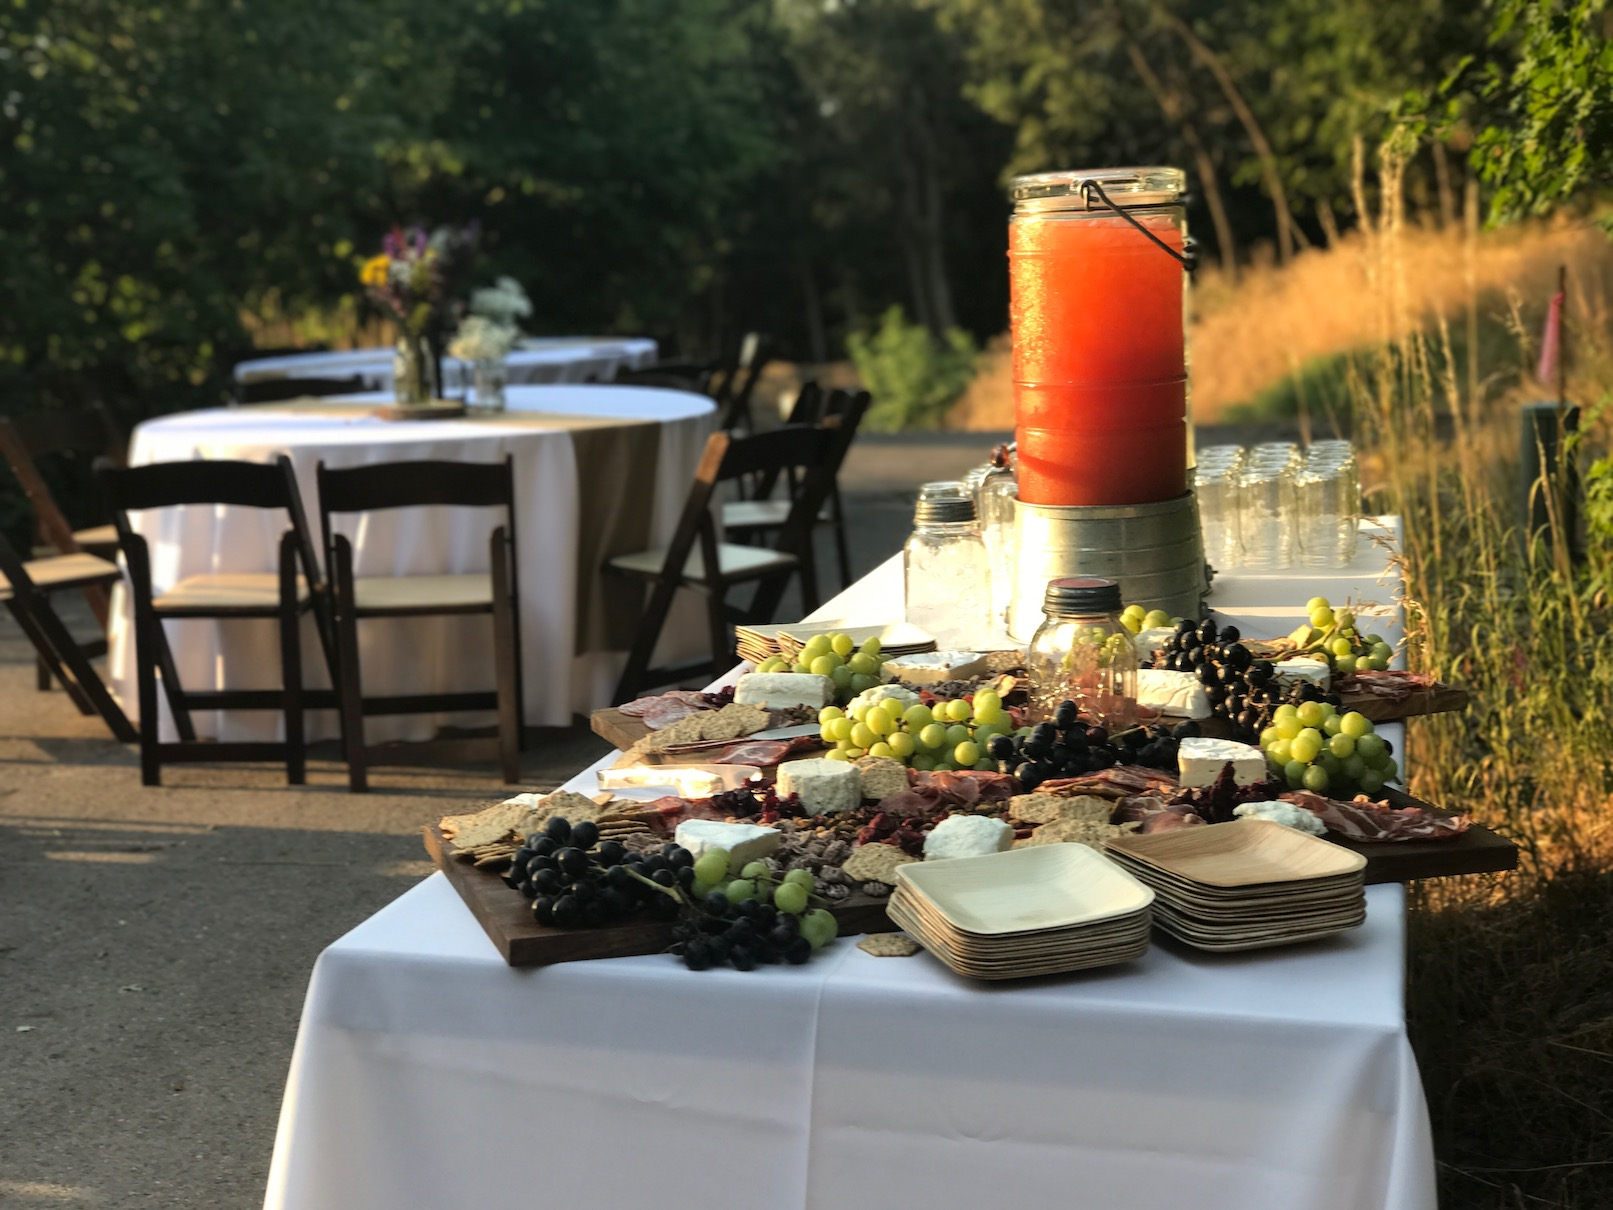 charcuterie table and lemonade